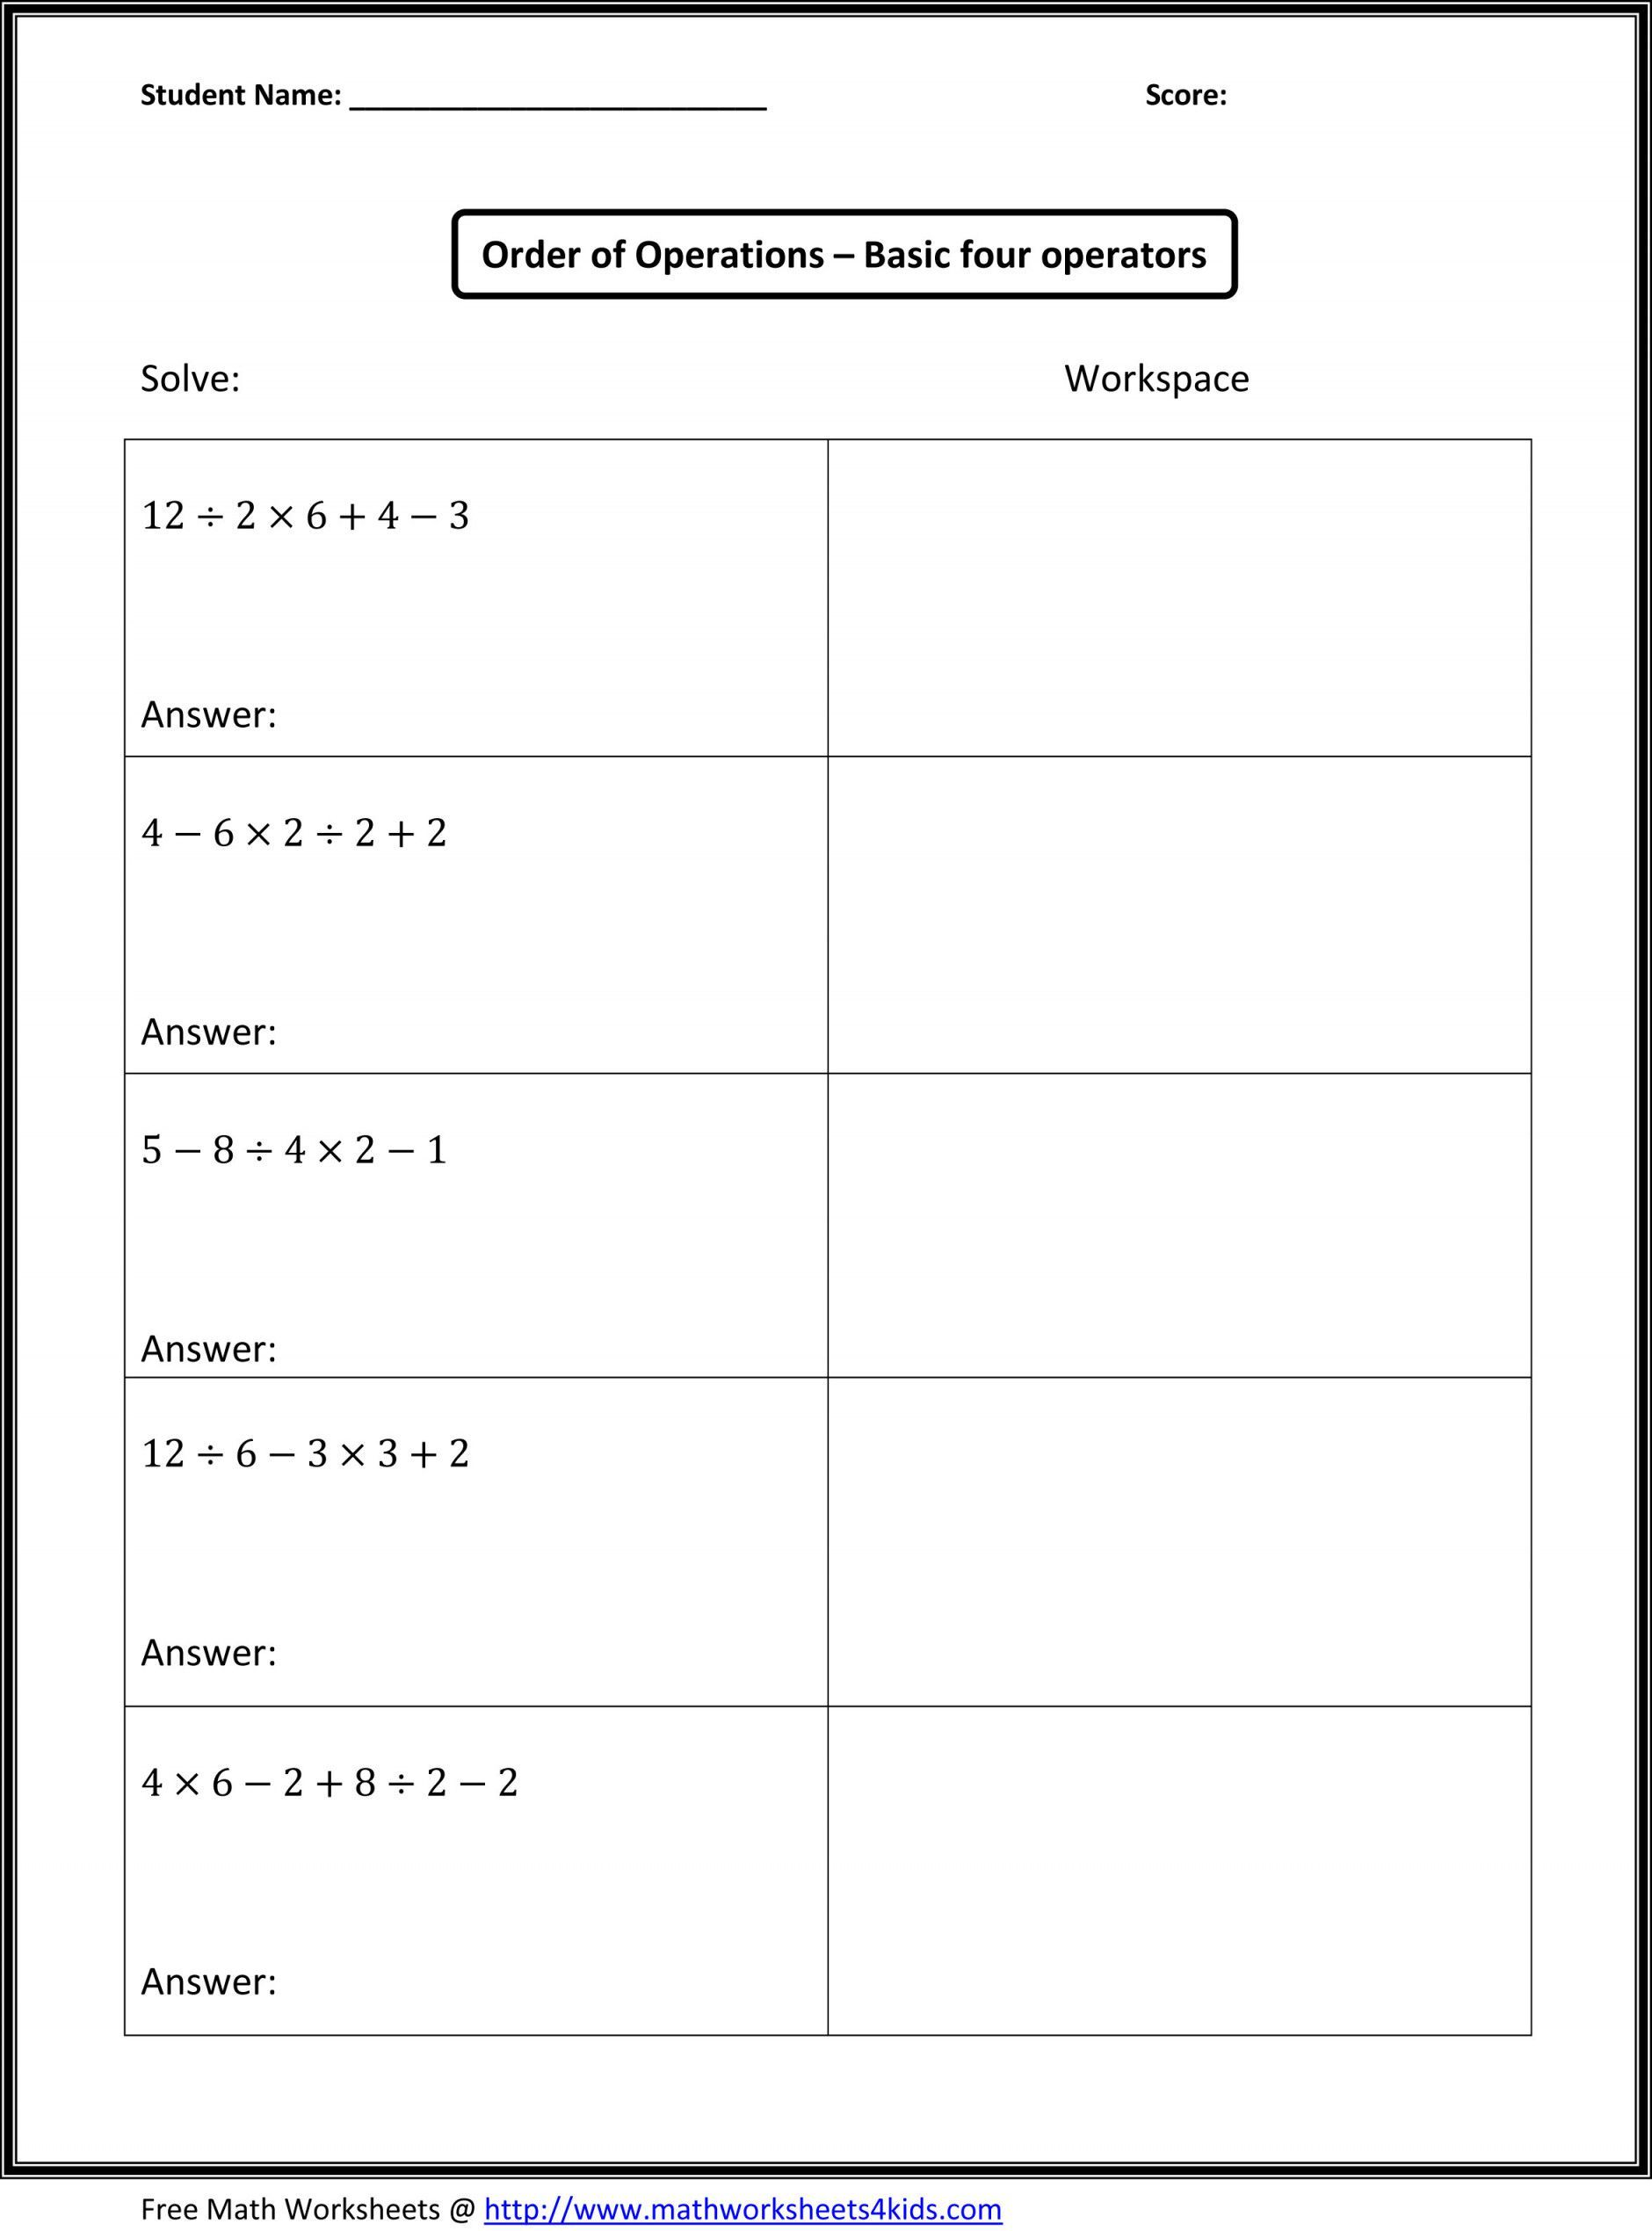 Pemdas Worksheets With Answers With Images